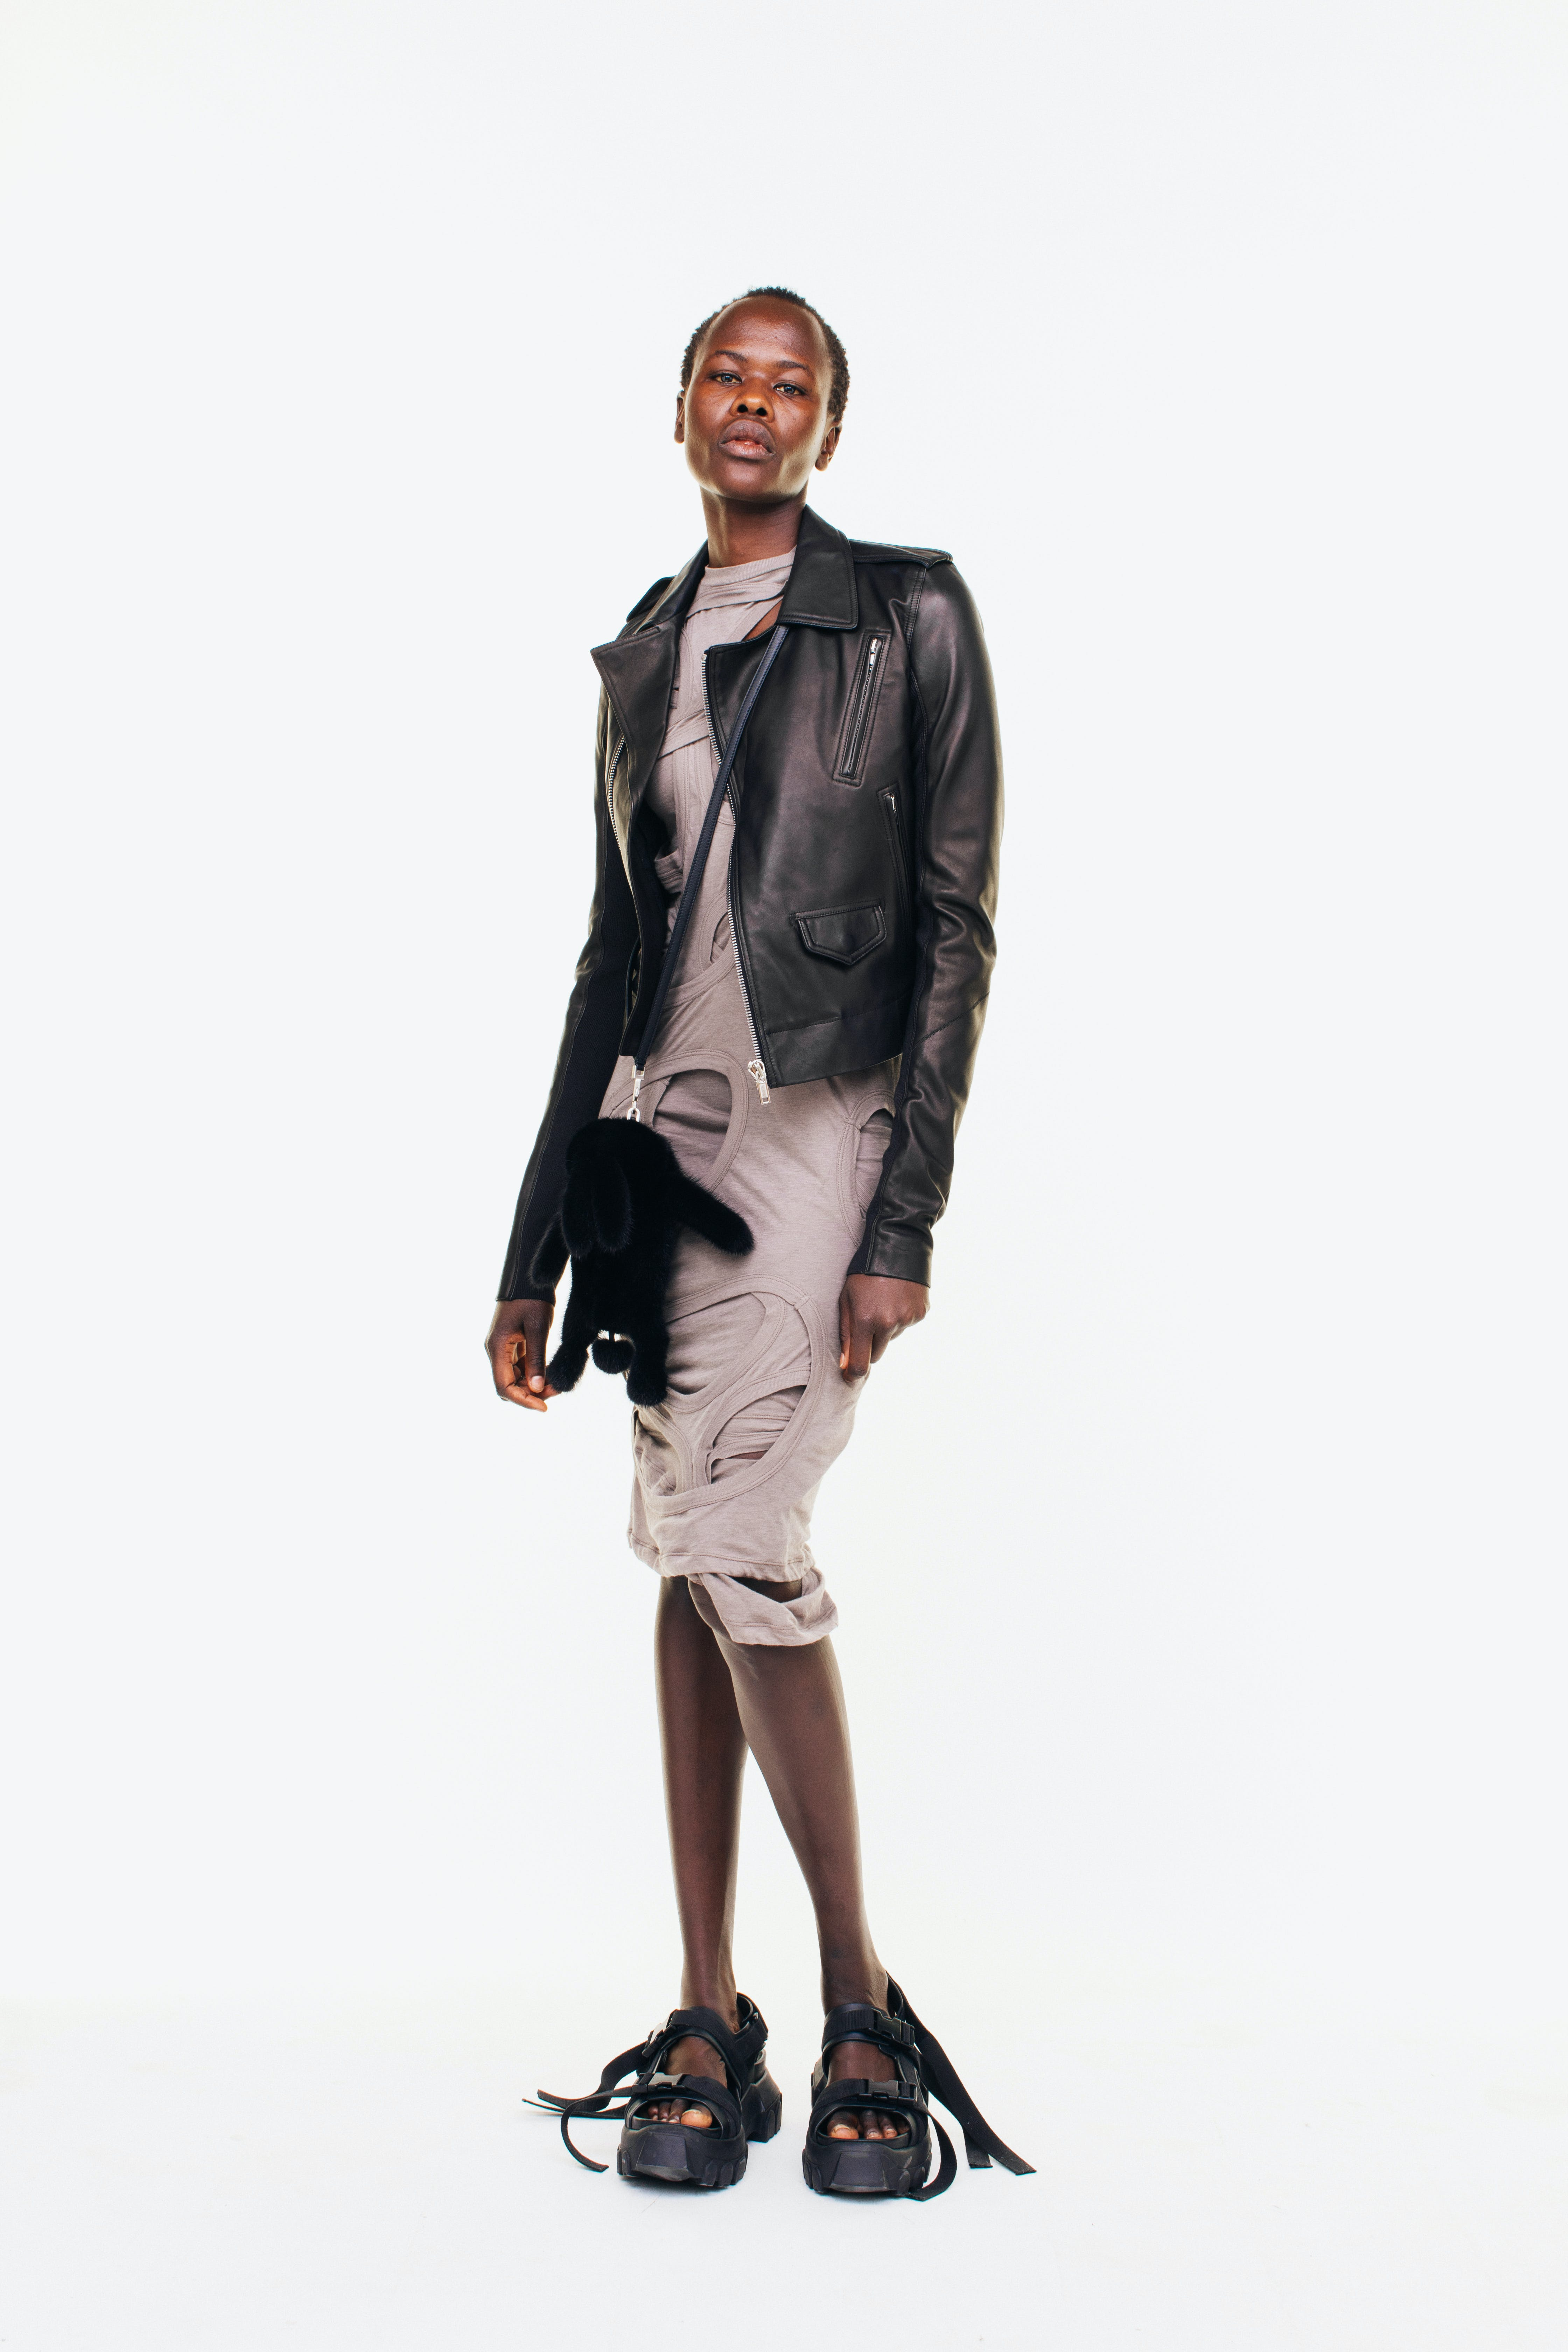 Rick Owens Campaign Biker Leather Jacket in Black Cutout Dress in Dust Long Strap Sandals in Black Hun Bunny Bag in Black Womens SS19 Pre Collection